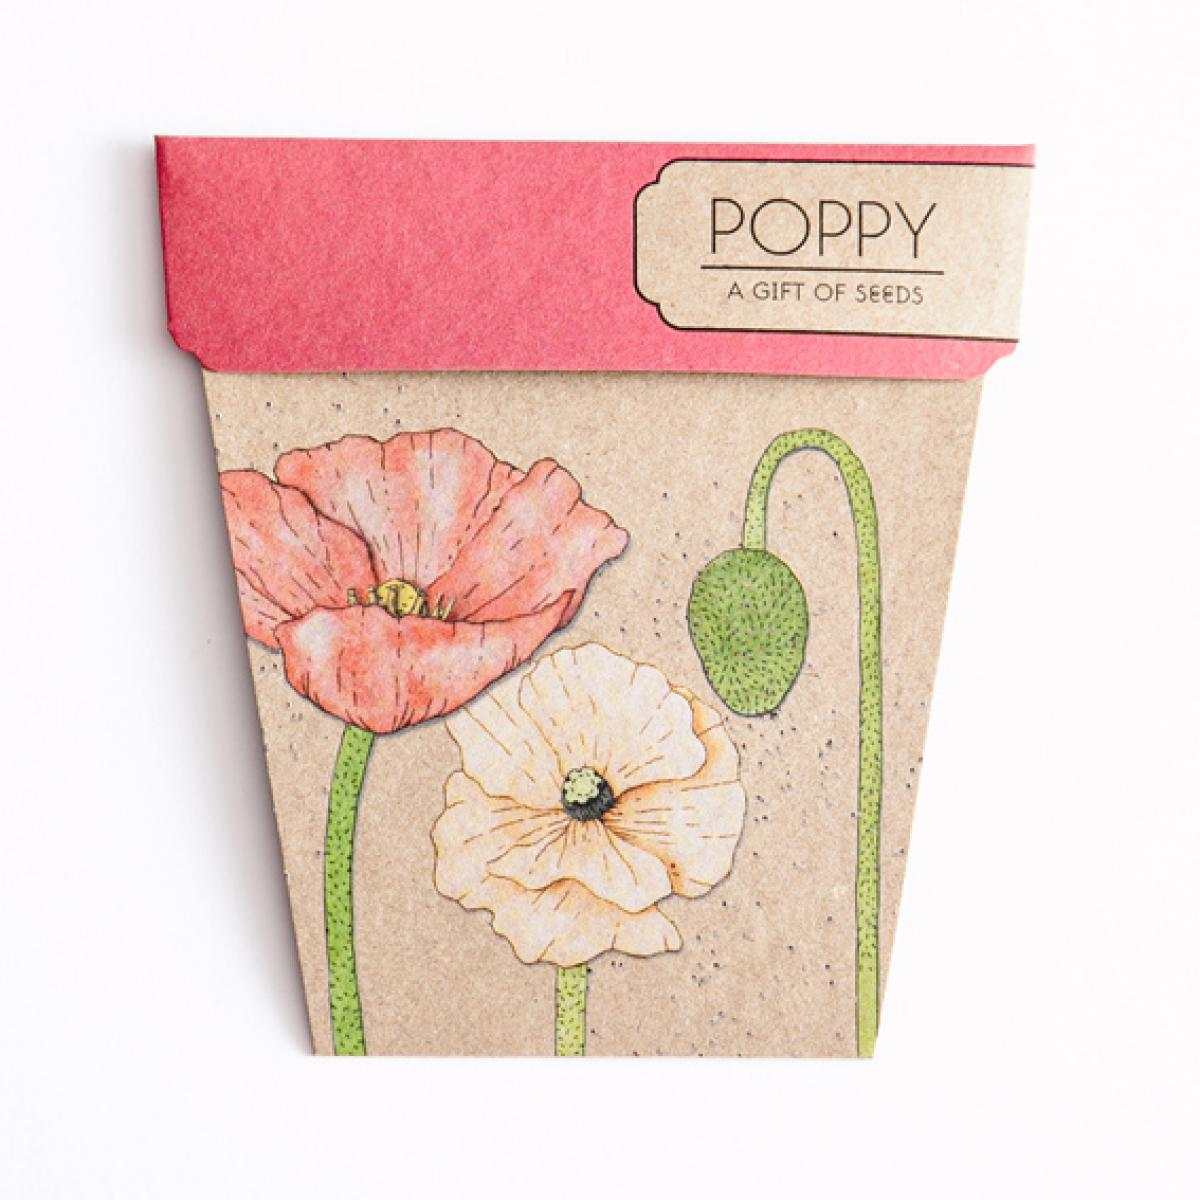 Sow 'n Sow Gift Card with Seeds - Poppy - Gift of Seeds - Throw Some Seeds - Australian gardening gifts and eco products online!